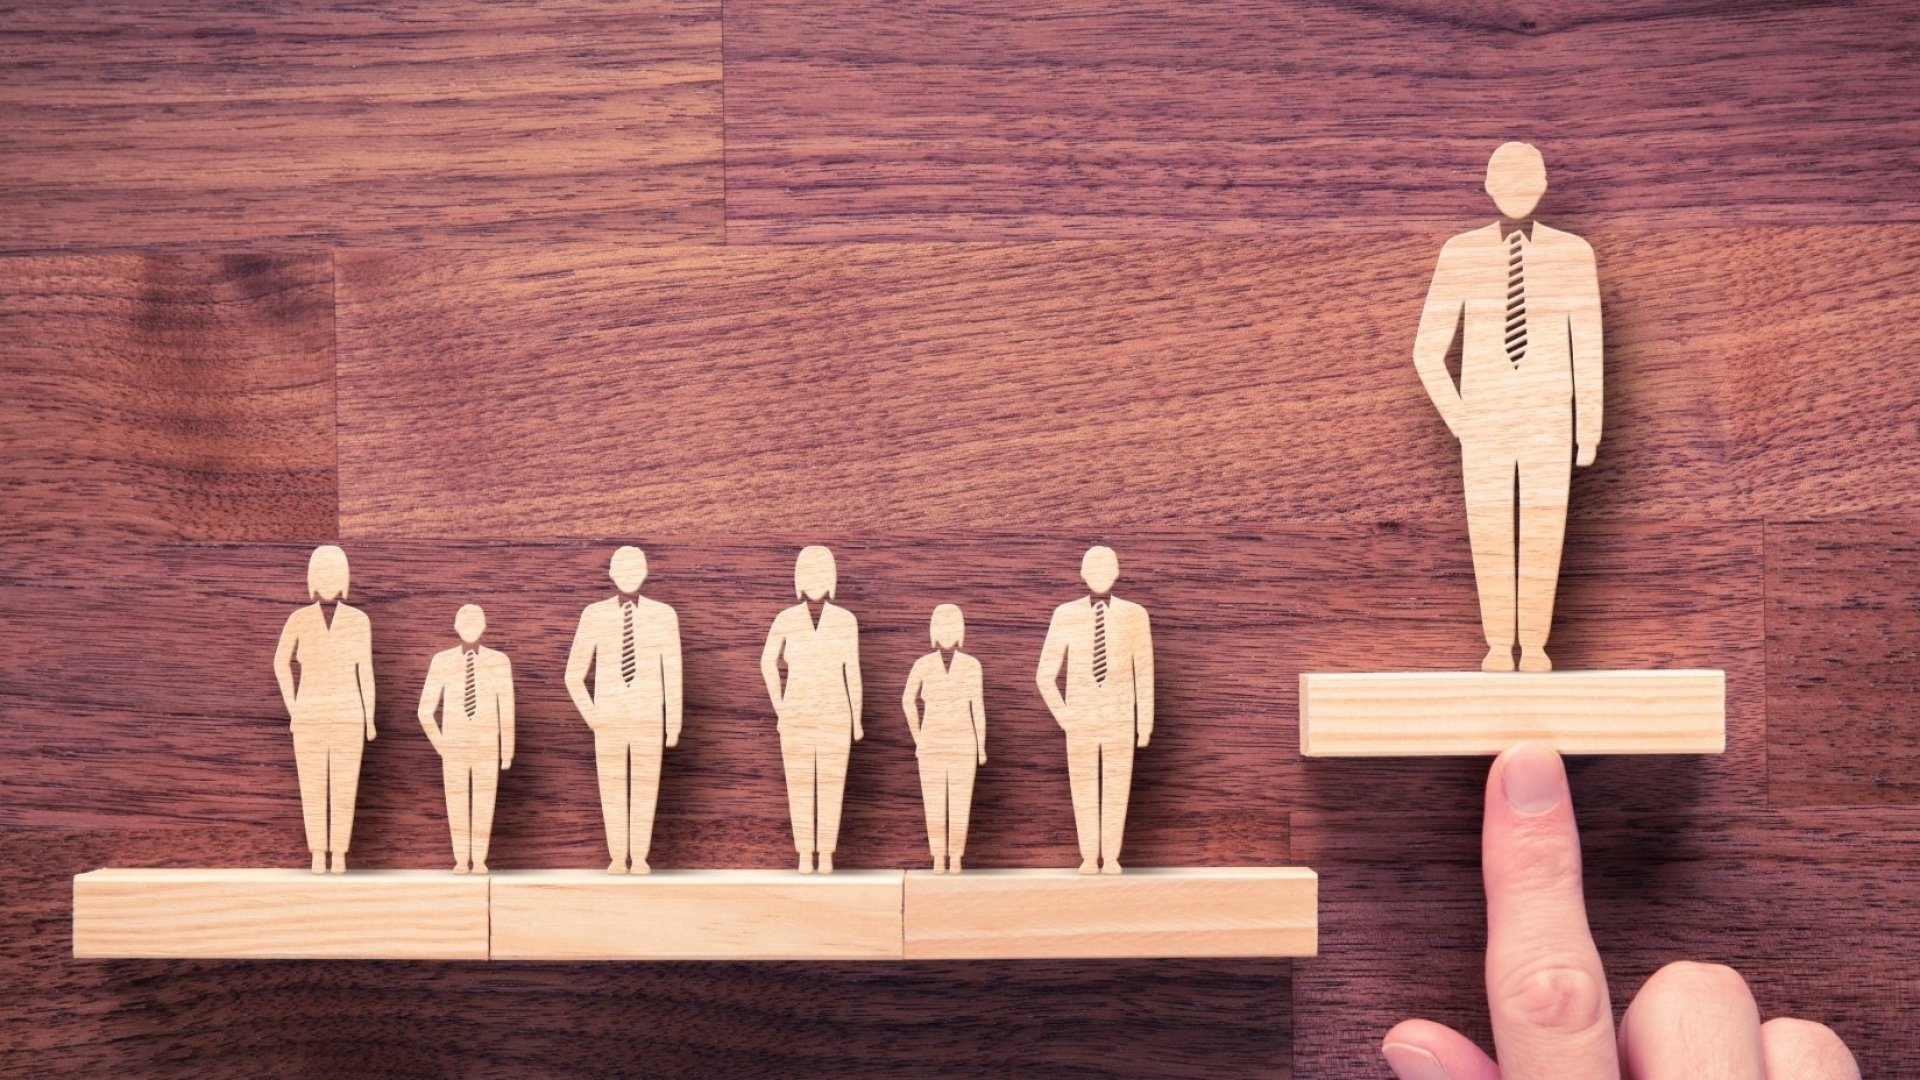 5 Practices You Can Learn to Keep Growing as a Leader